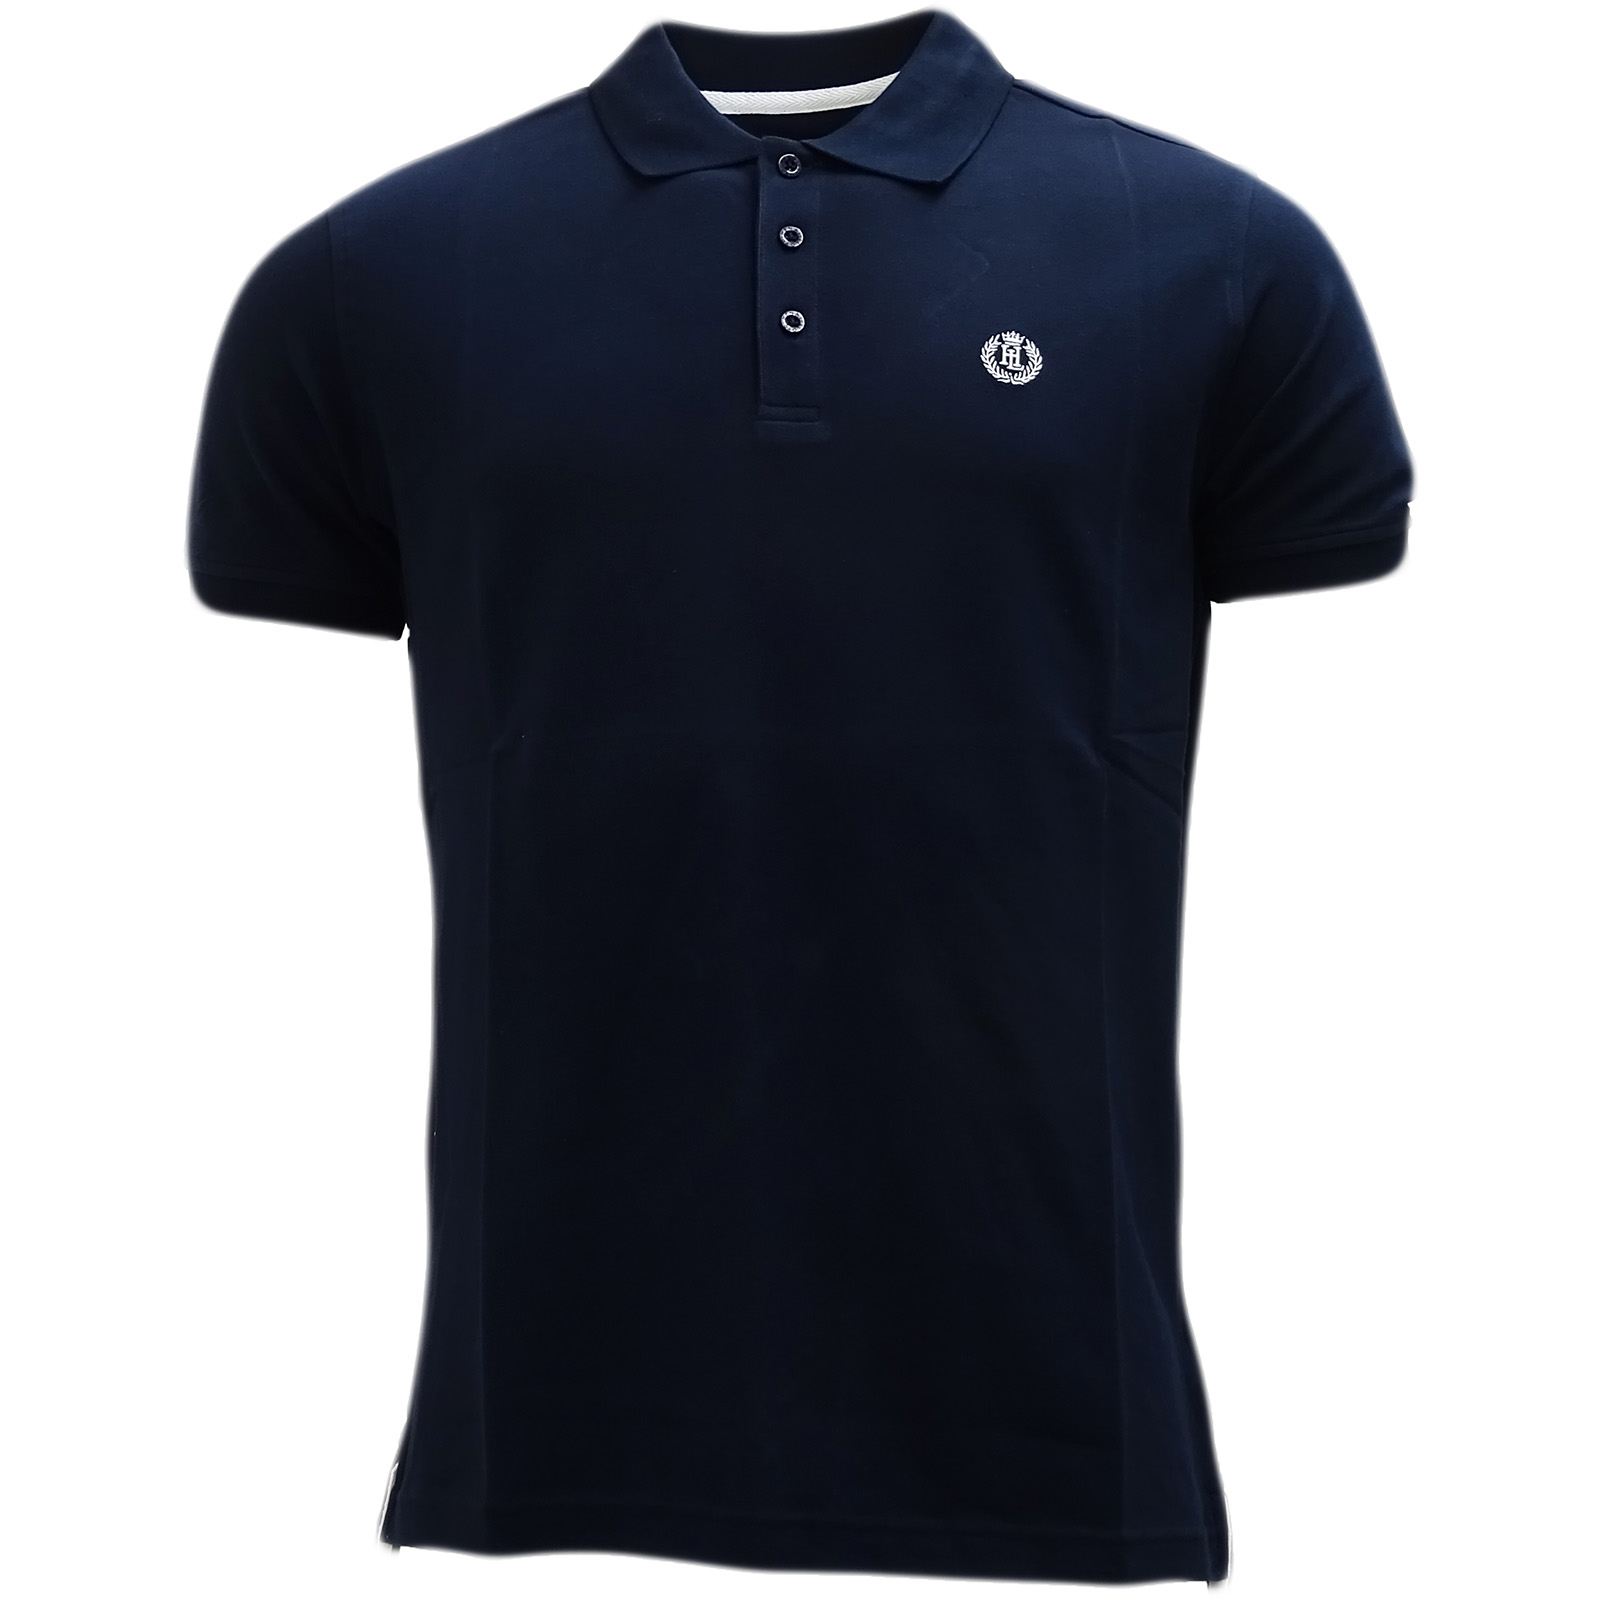 Henri-Lloyd-Plain-Stretch-Polo-Shirt-Cowes-18